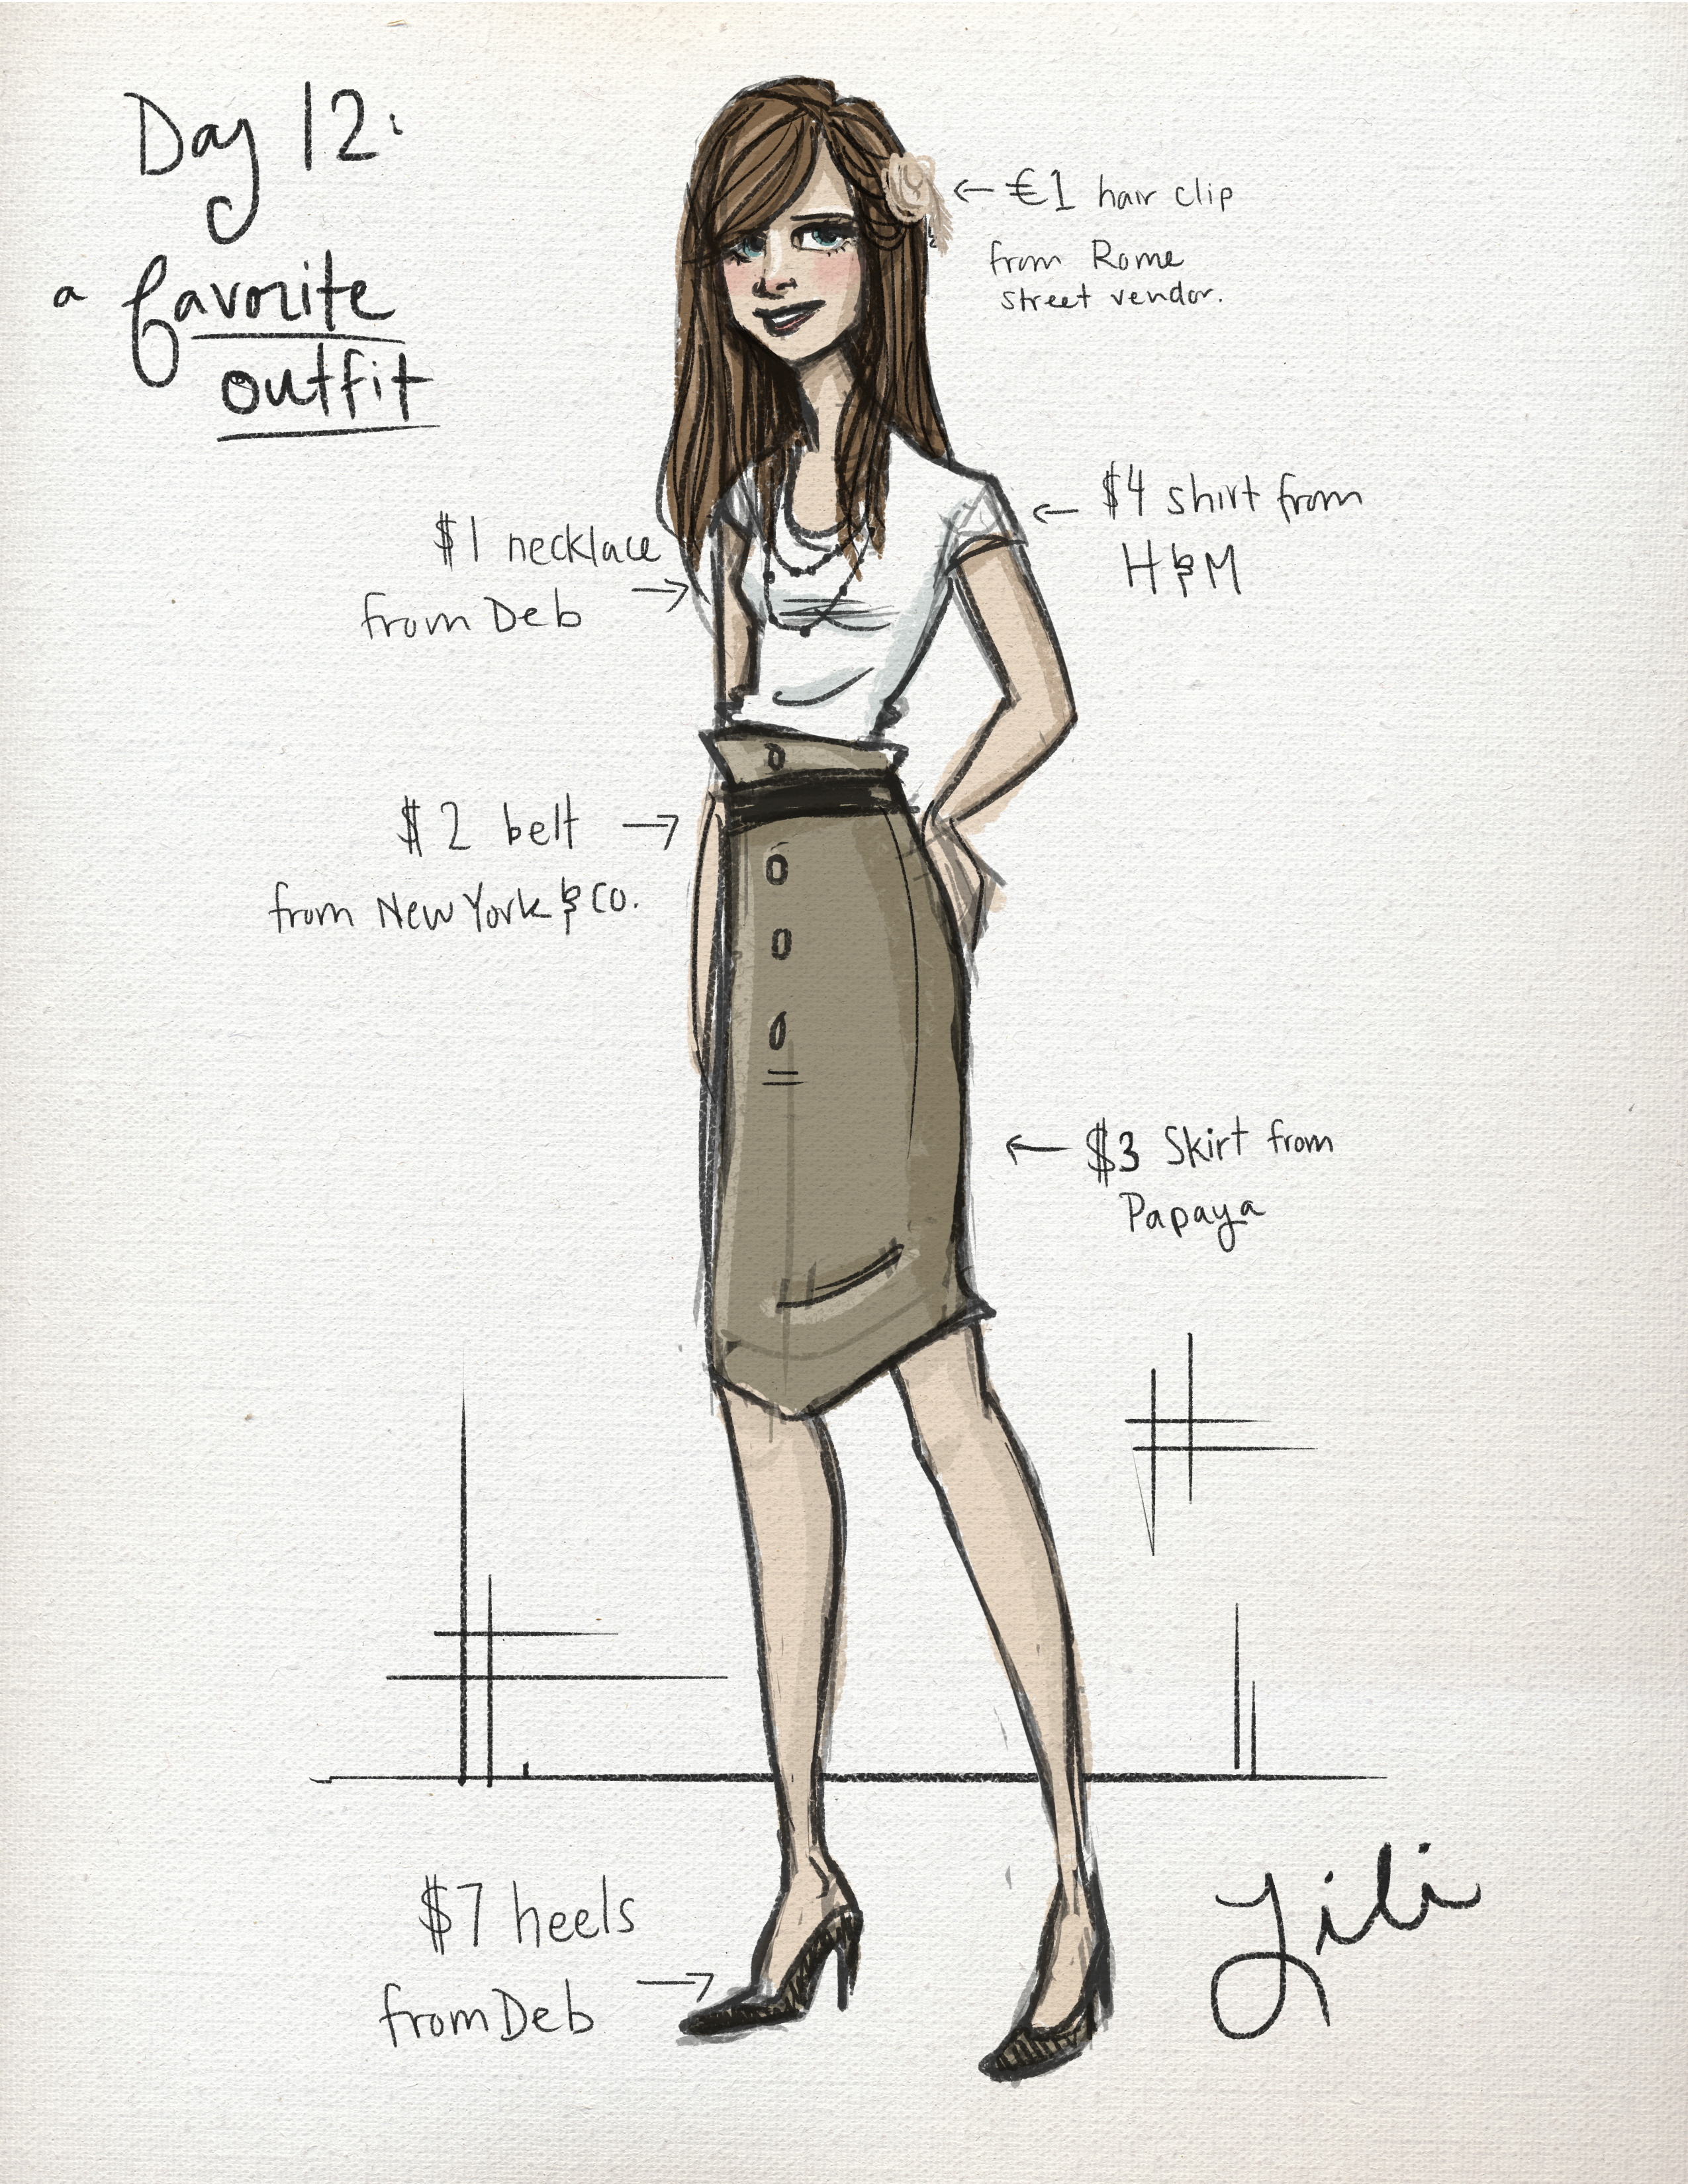 Day 12 A Favorite Outfit Lili Ribeira Graphic Design